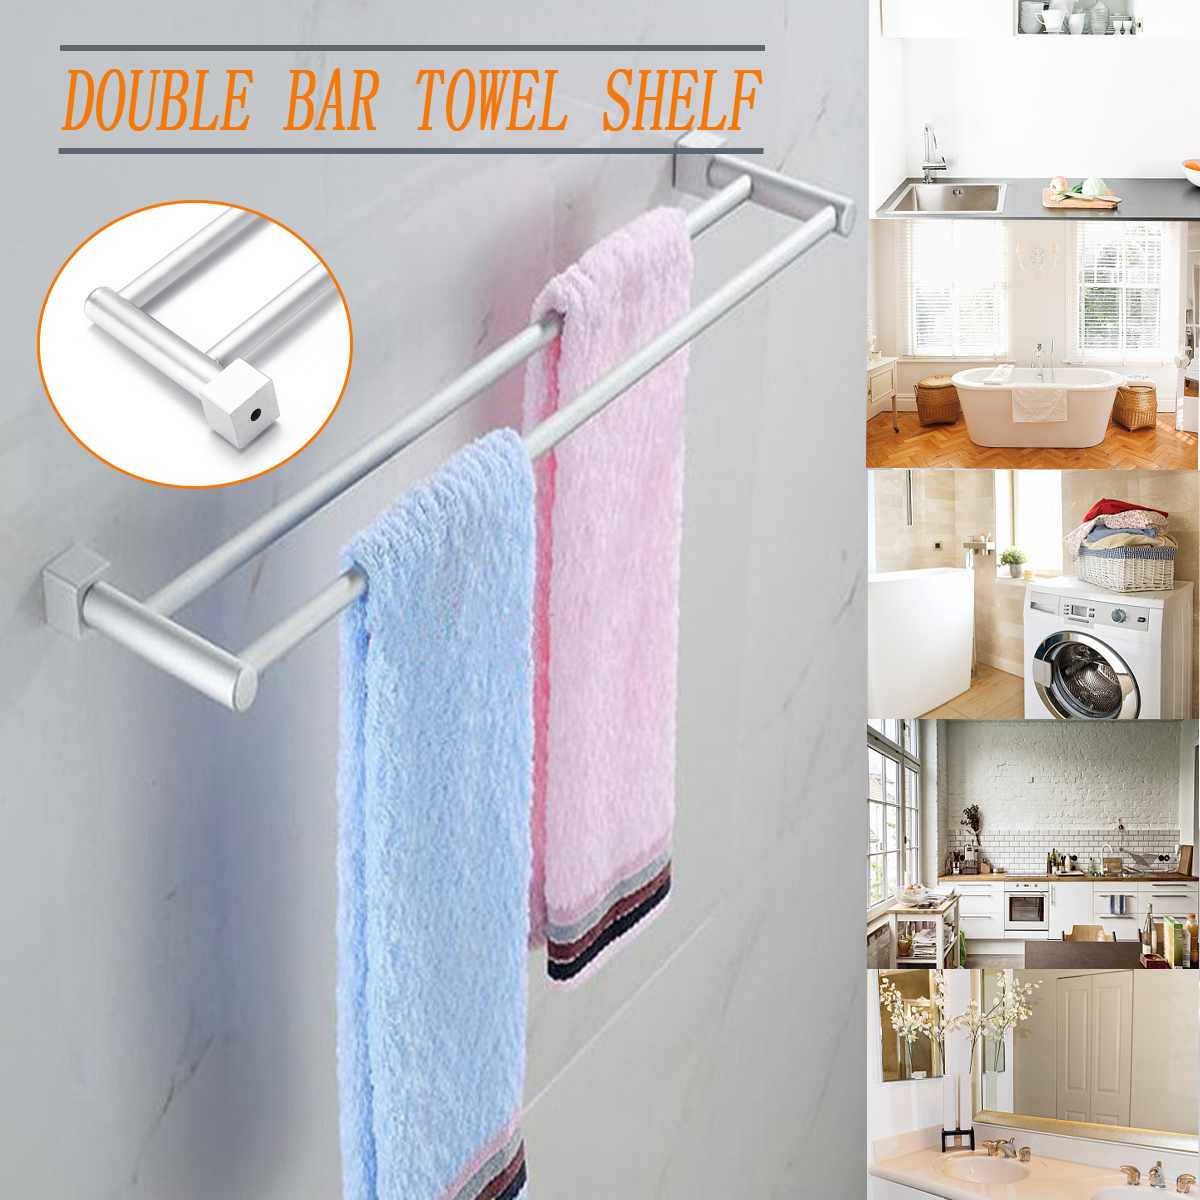 Xueqin Bathroom Double Towel Rail Rack 2 Bar Space Aluminum Hanger Wall Mounted Towel Shelf Bath Rails Bars Holder 58x12cm intex игровой центр манеж 130х104 см p tmg b1f